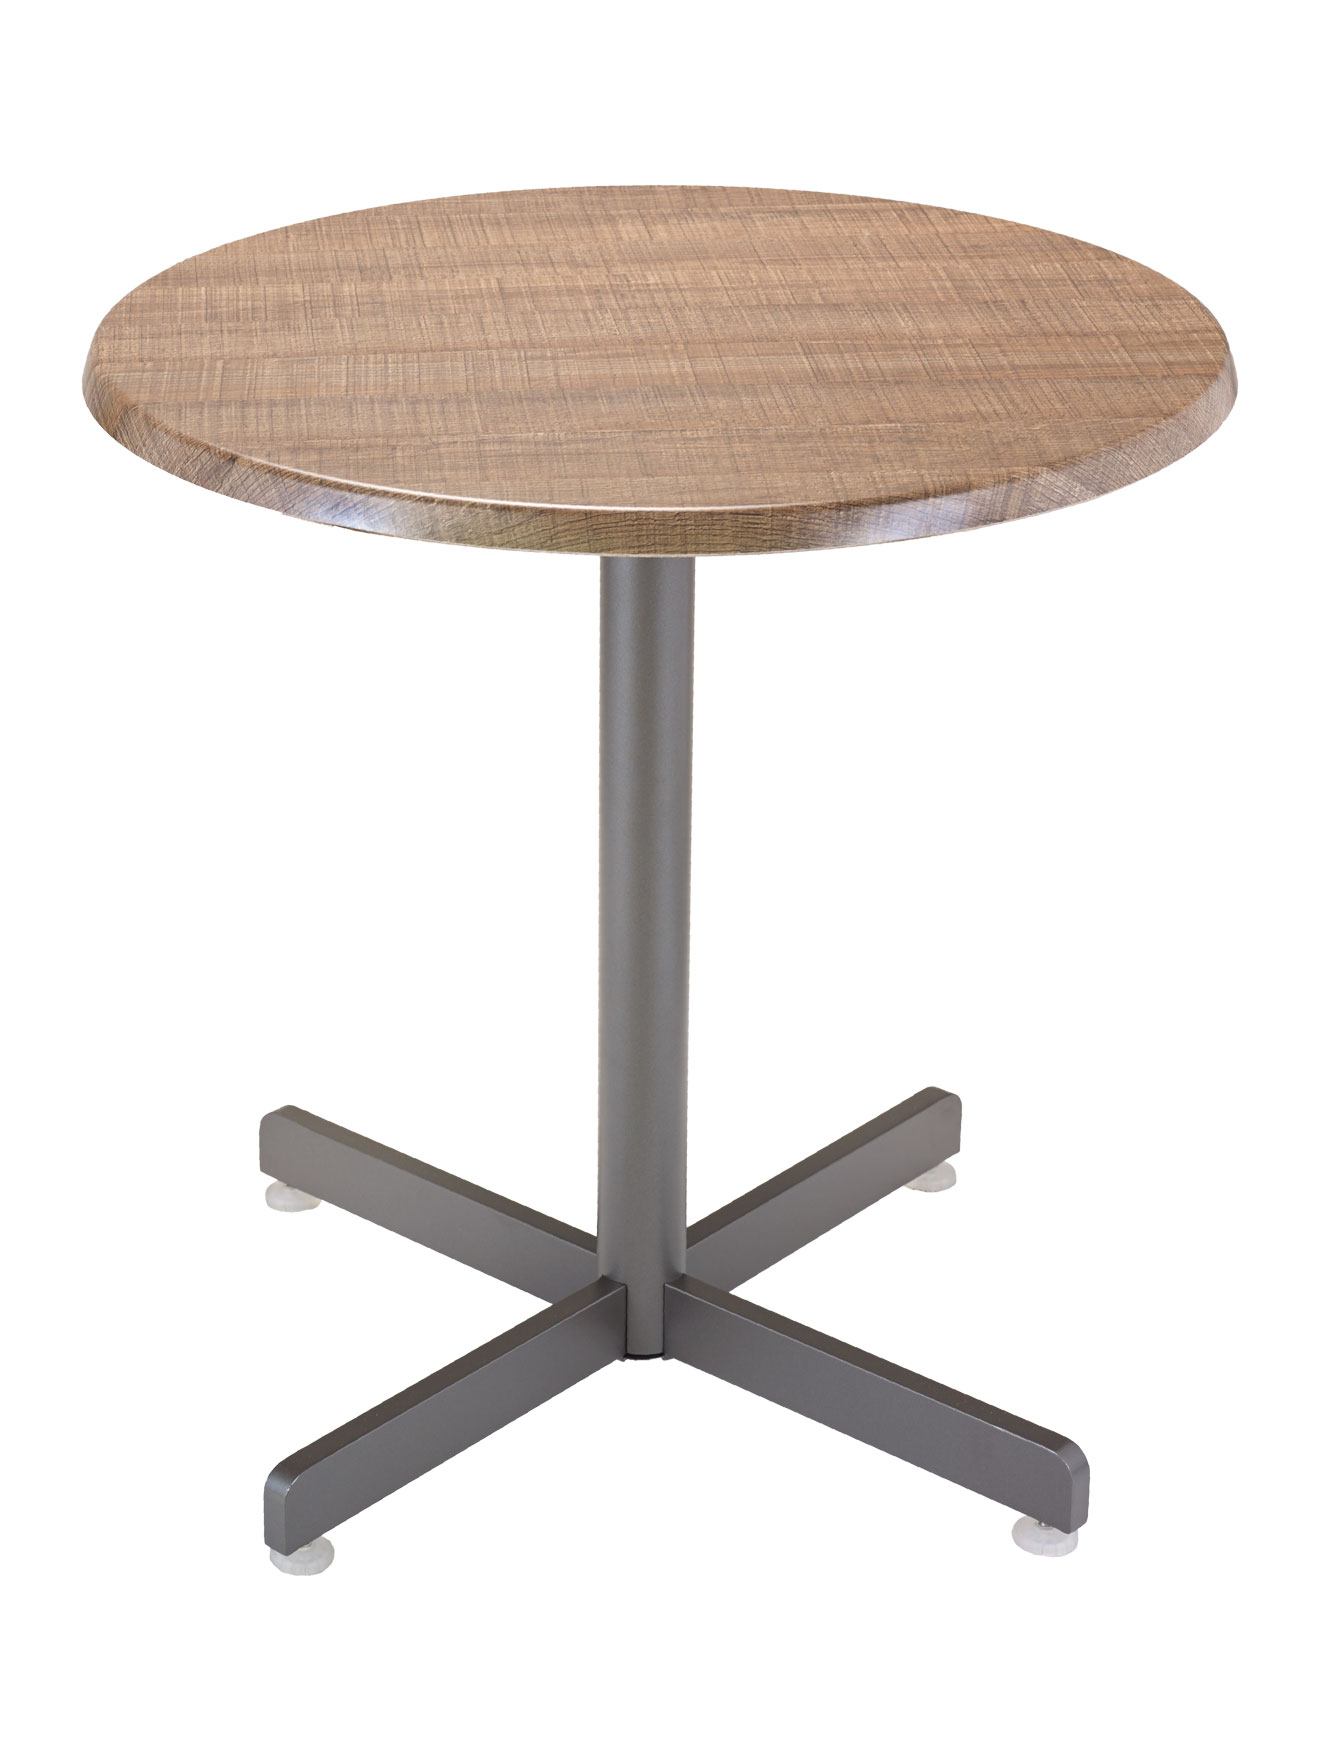 ARIA TABLE TOPS $69.00 – $229.00